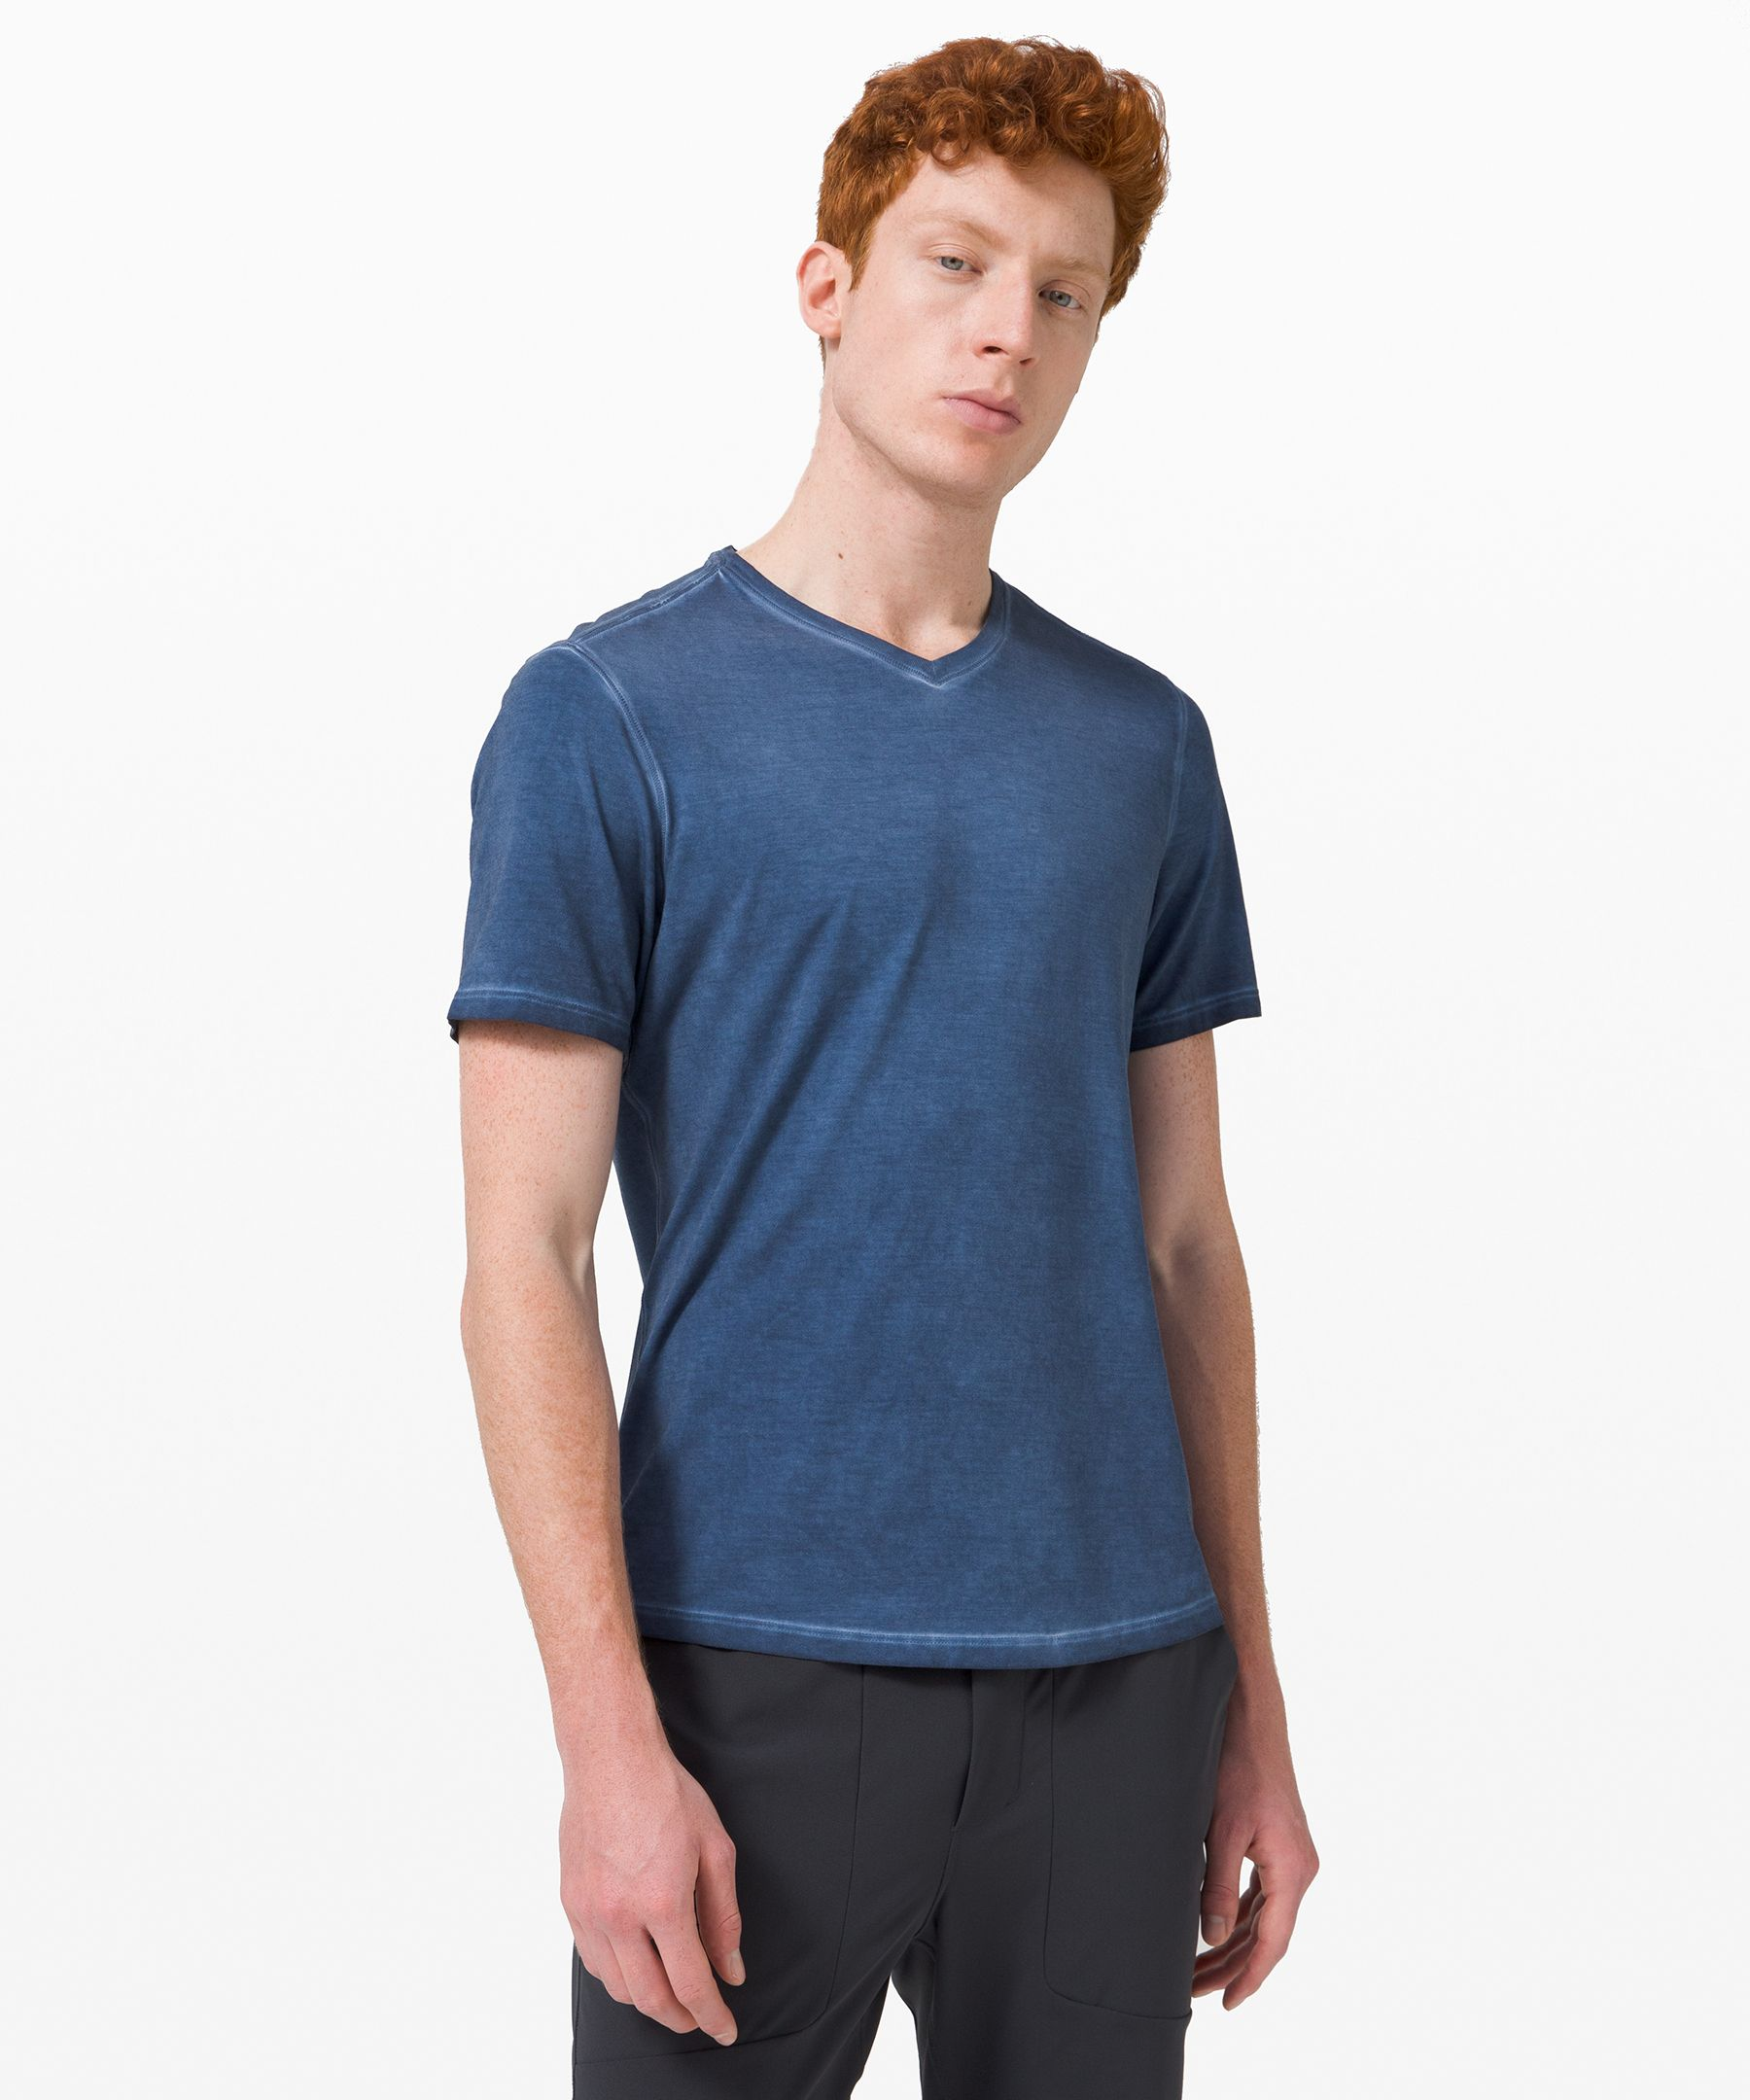 This soft, lightweight v-neck  is built for ultimate everyday  comfort.